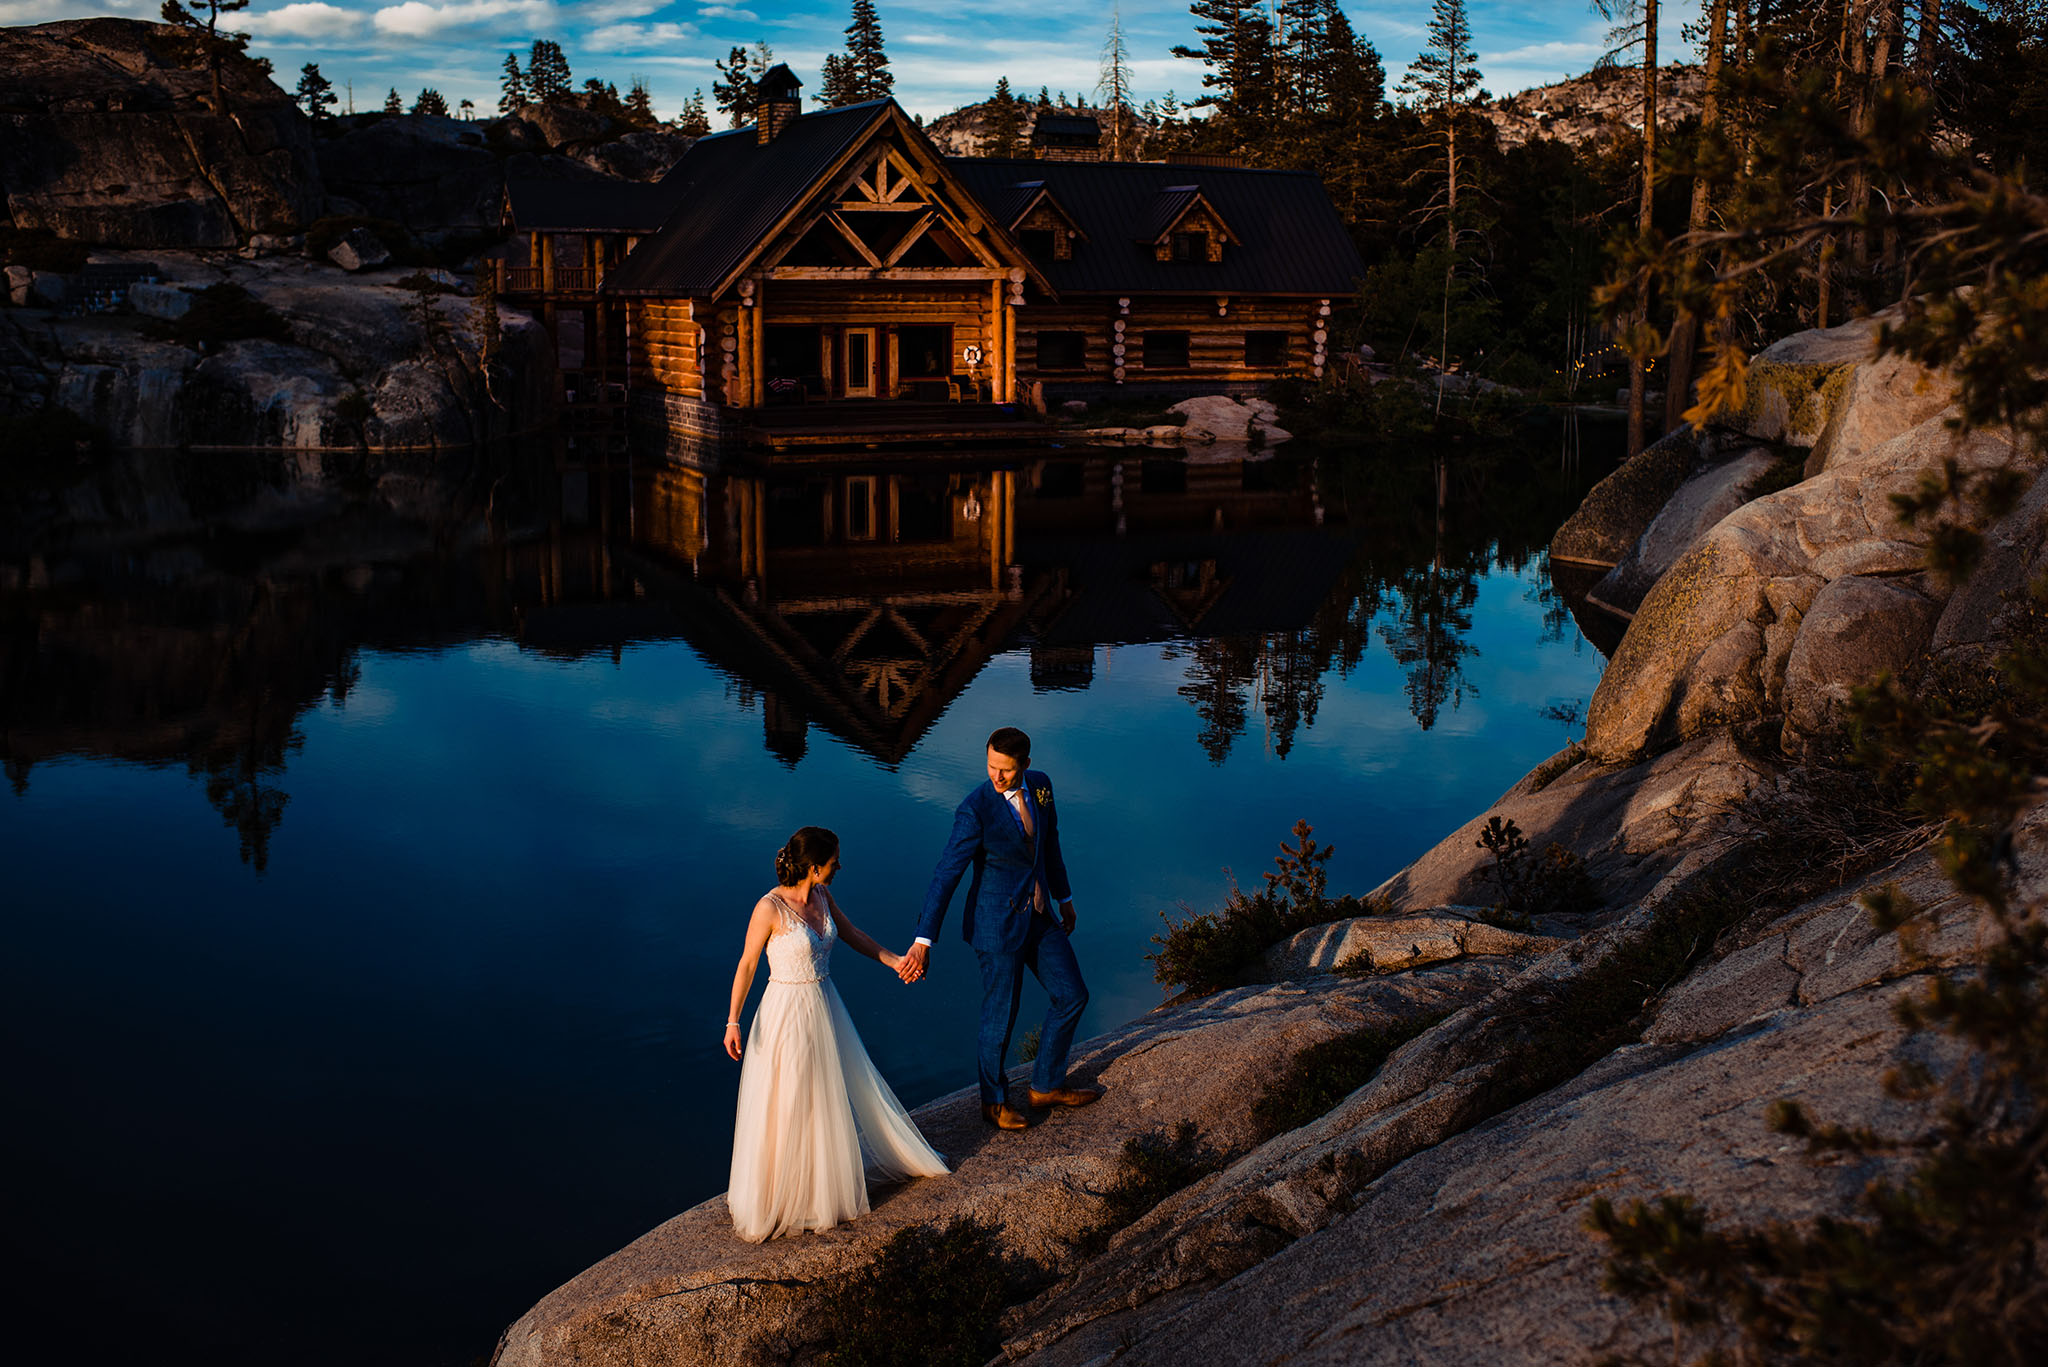 The Hideout wedding venue in the secluded lake tahoe mountain for adventurous couples